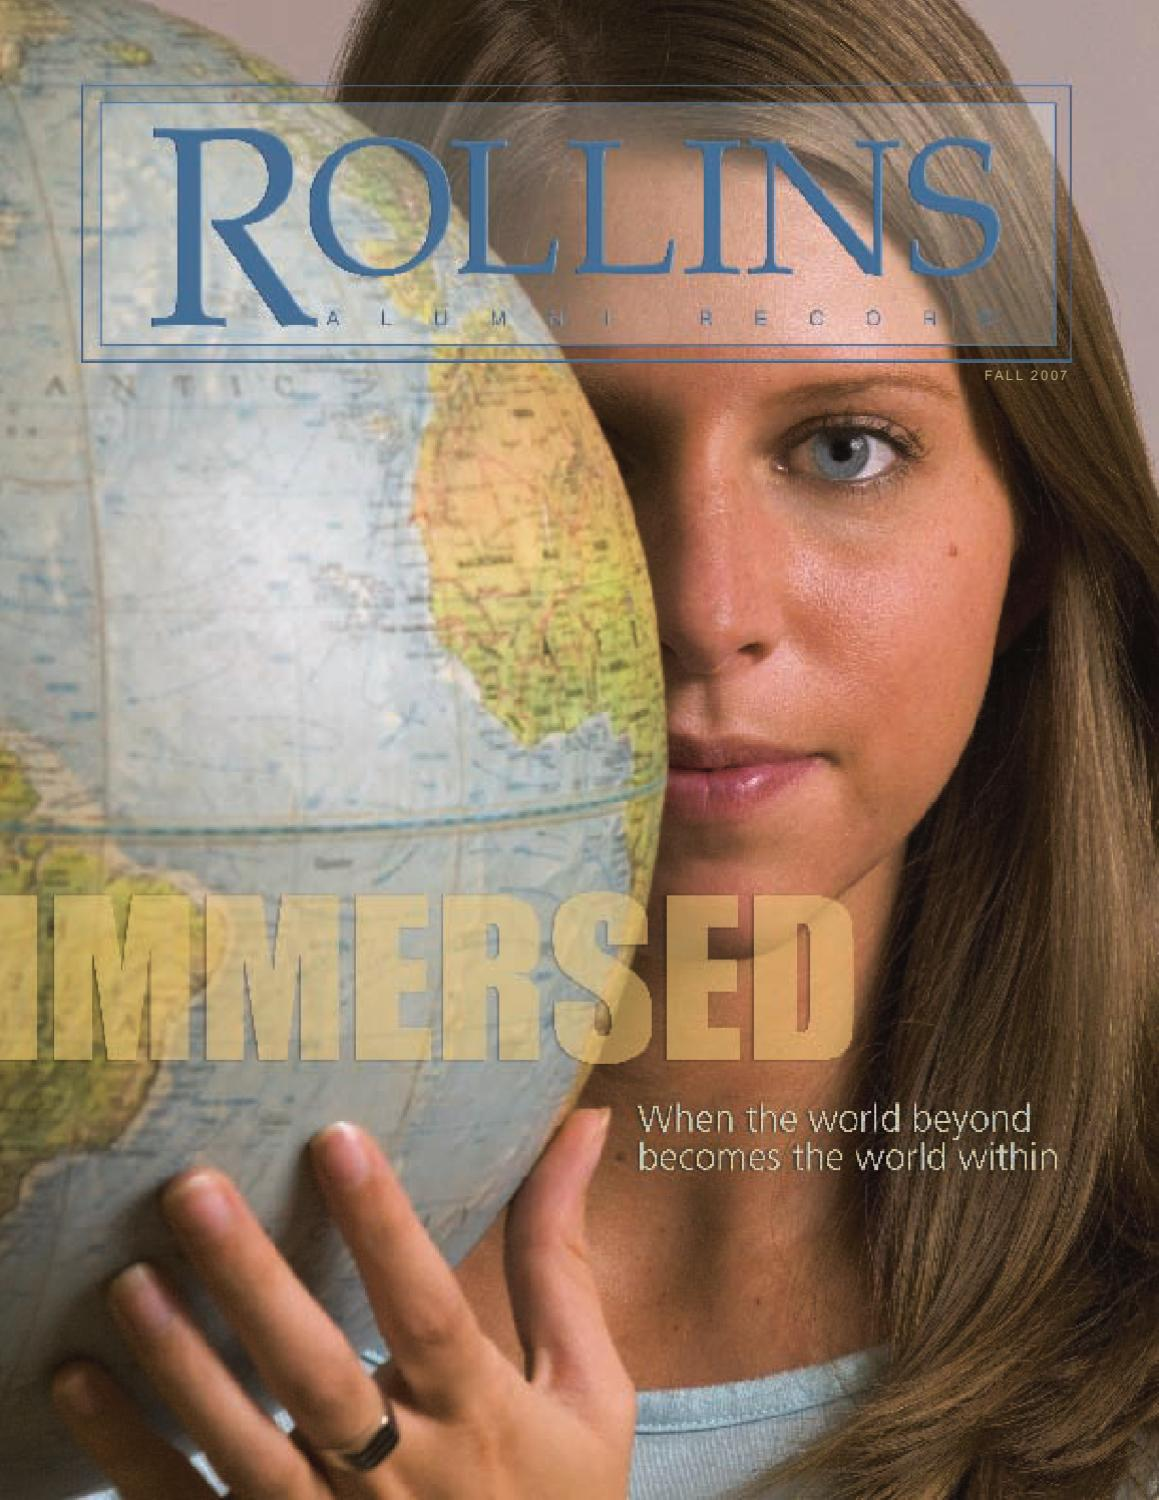 Rollins Alumni Record Fall 2007 By Rollins College Issuu